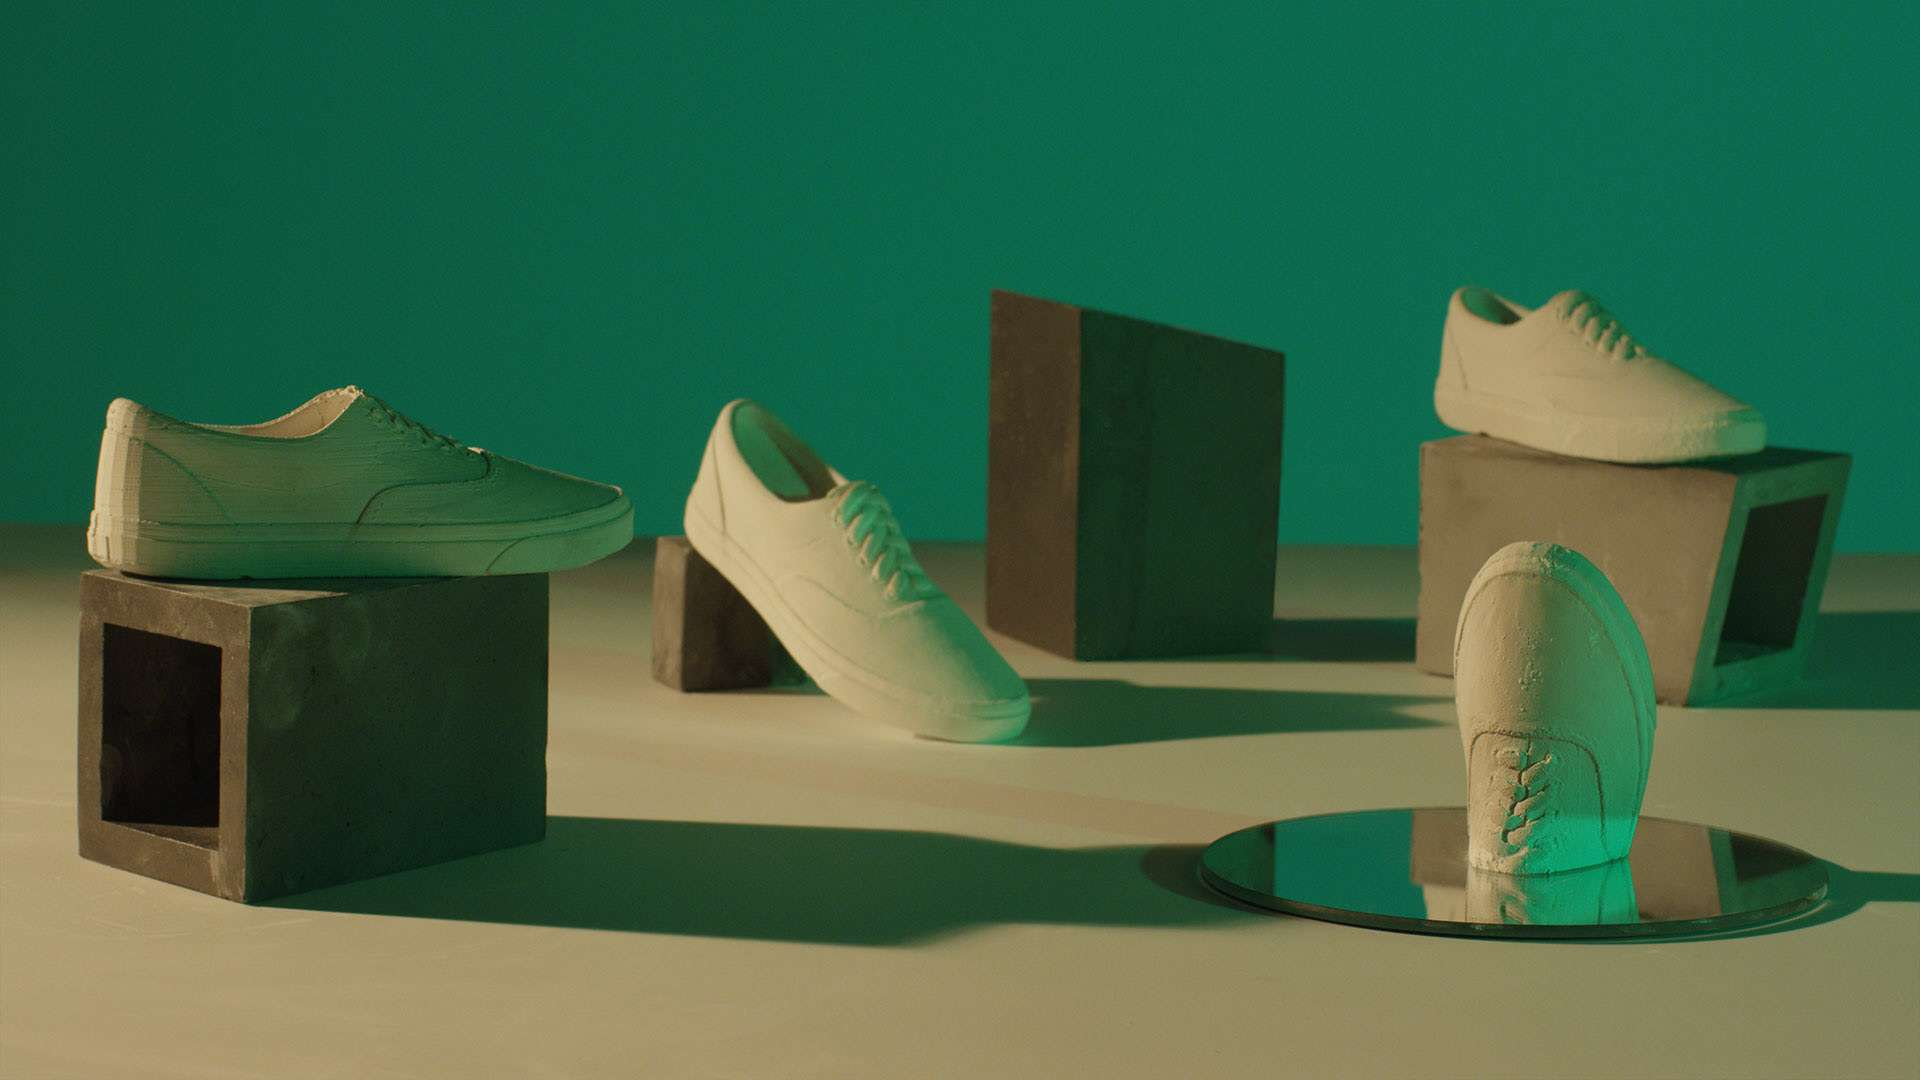 shot of Vans shoes made of sand by Simon Duhamel for OTH x VANS